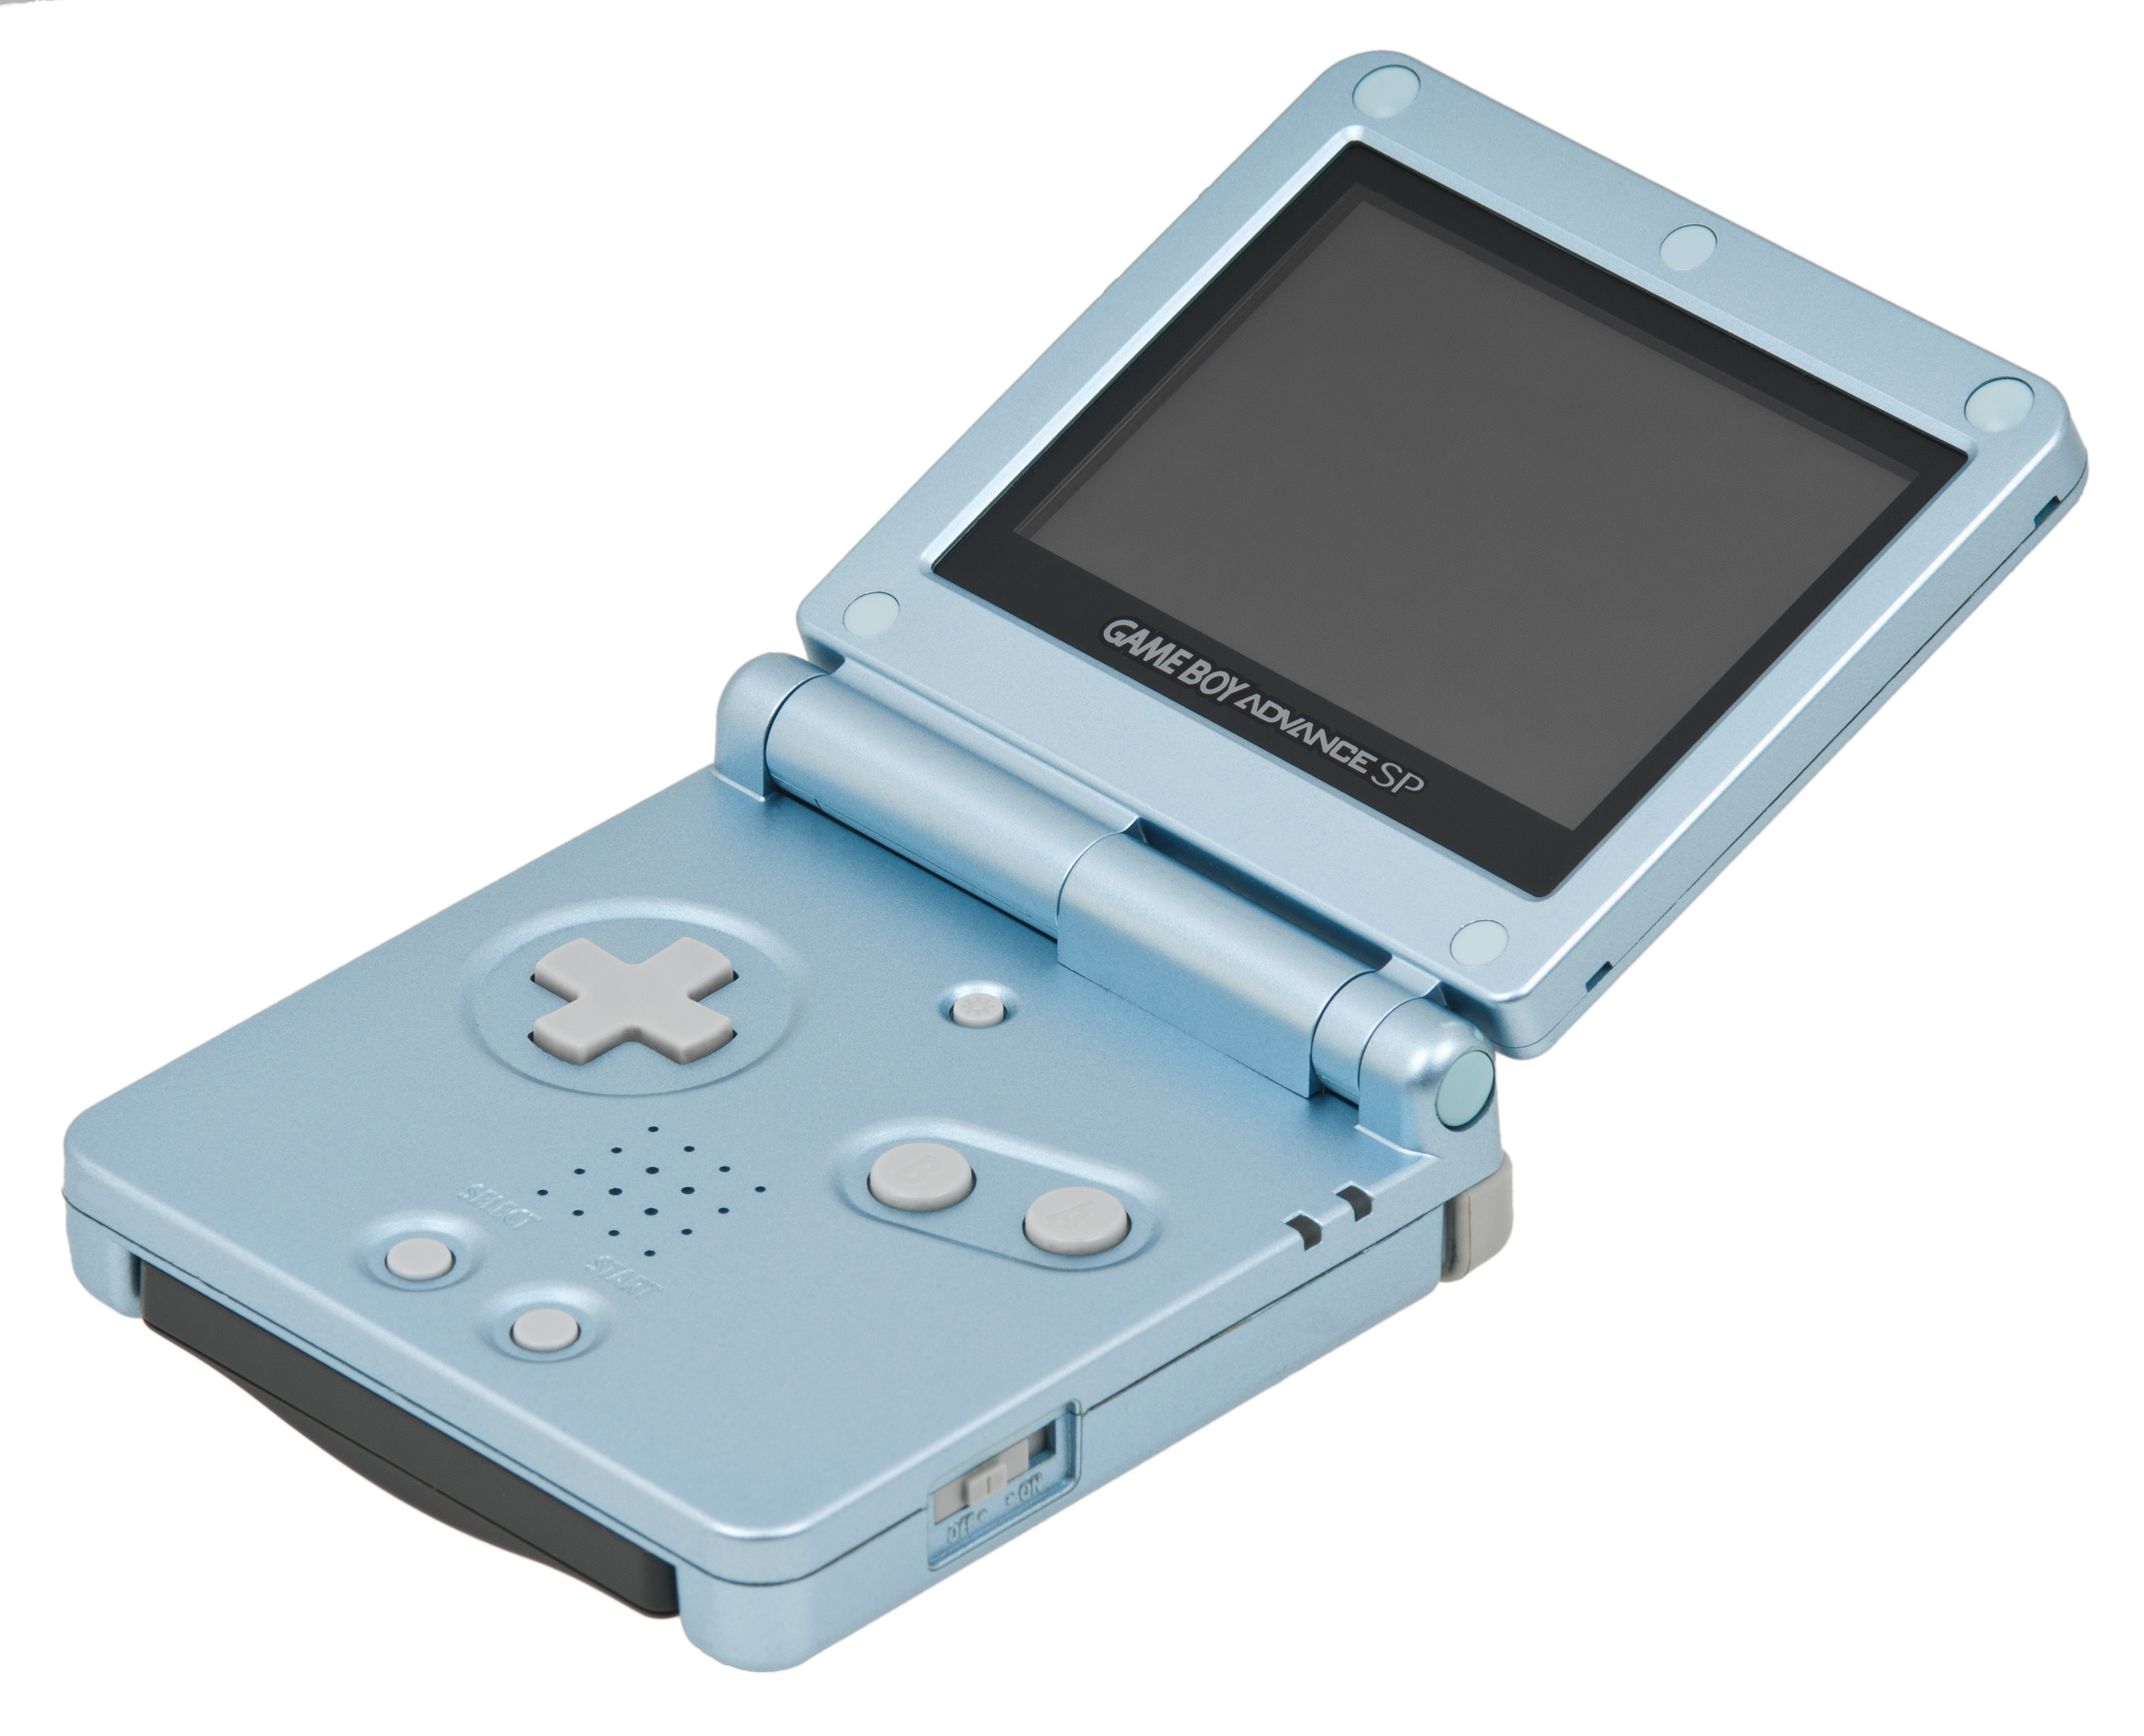 Sell my Sell My Nintendo Game Boy Advance SP